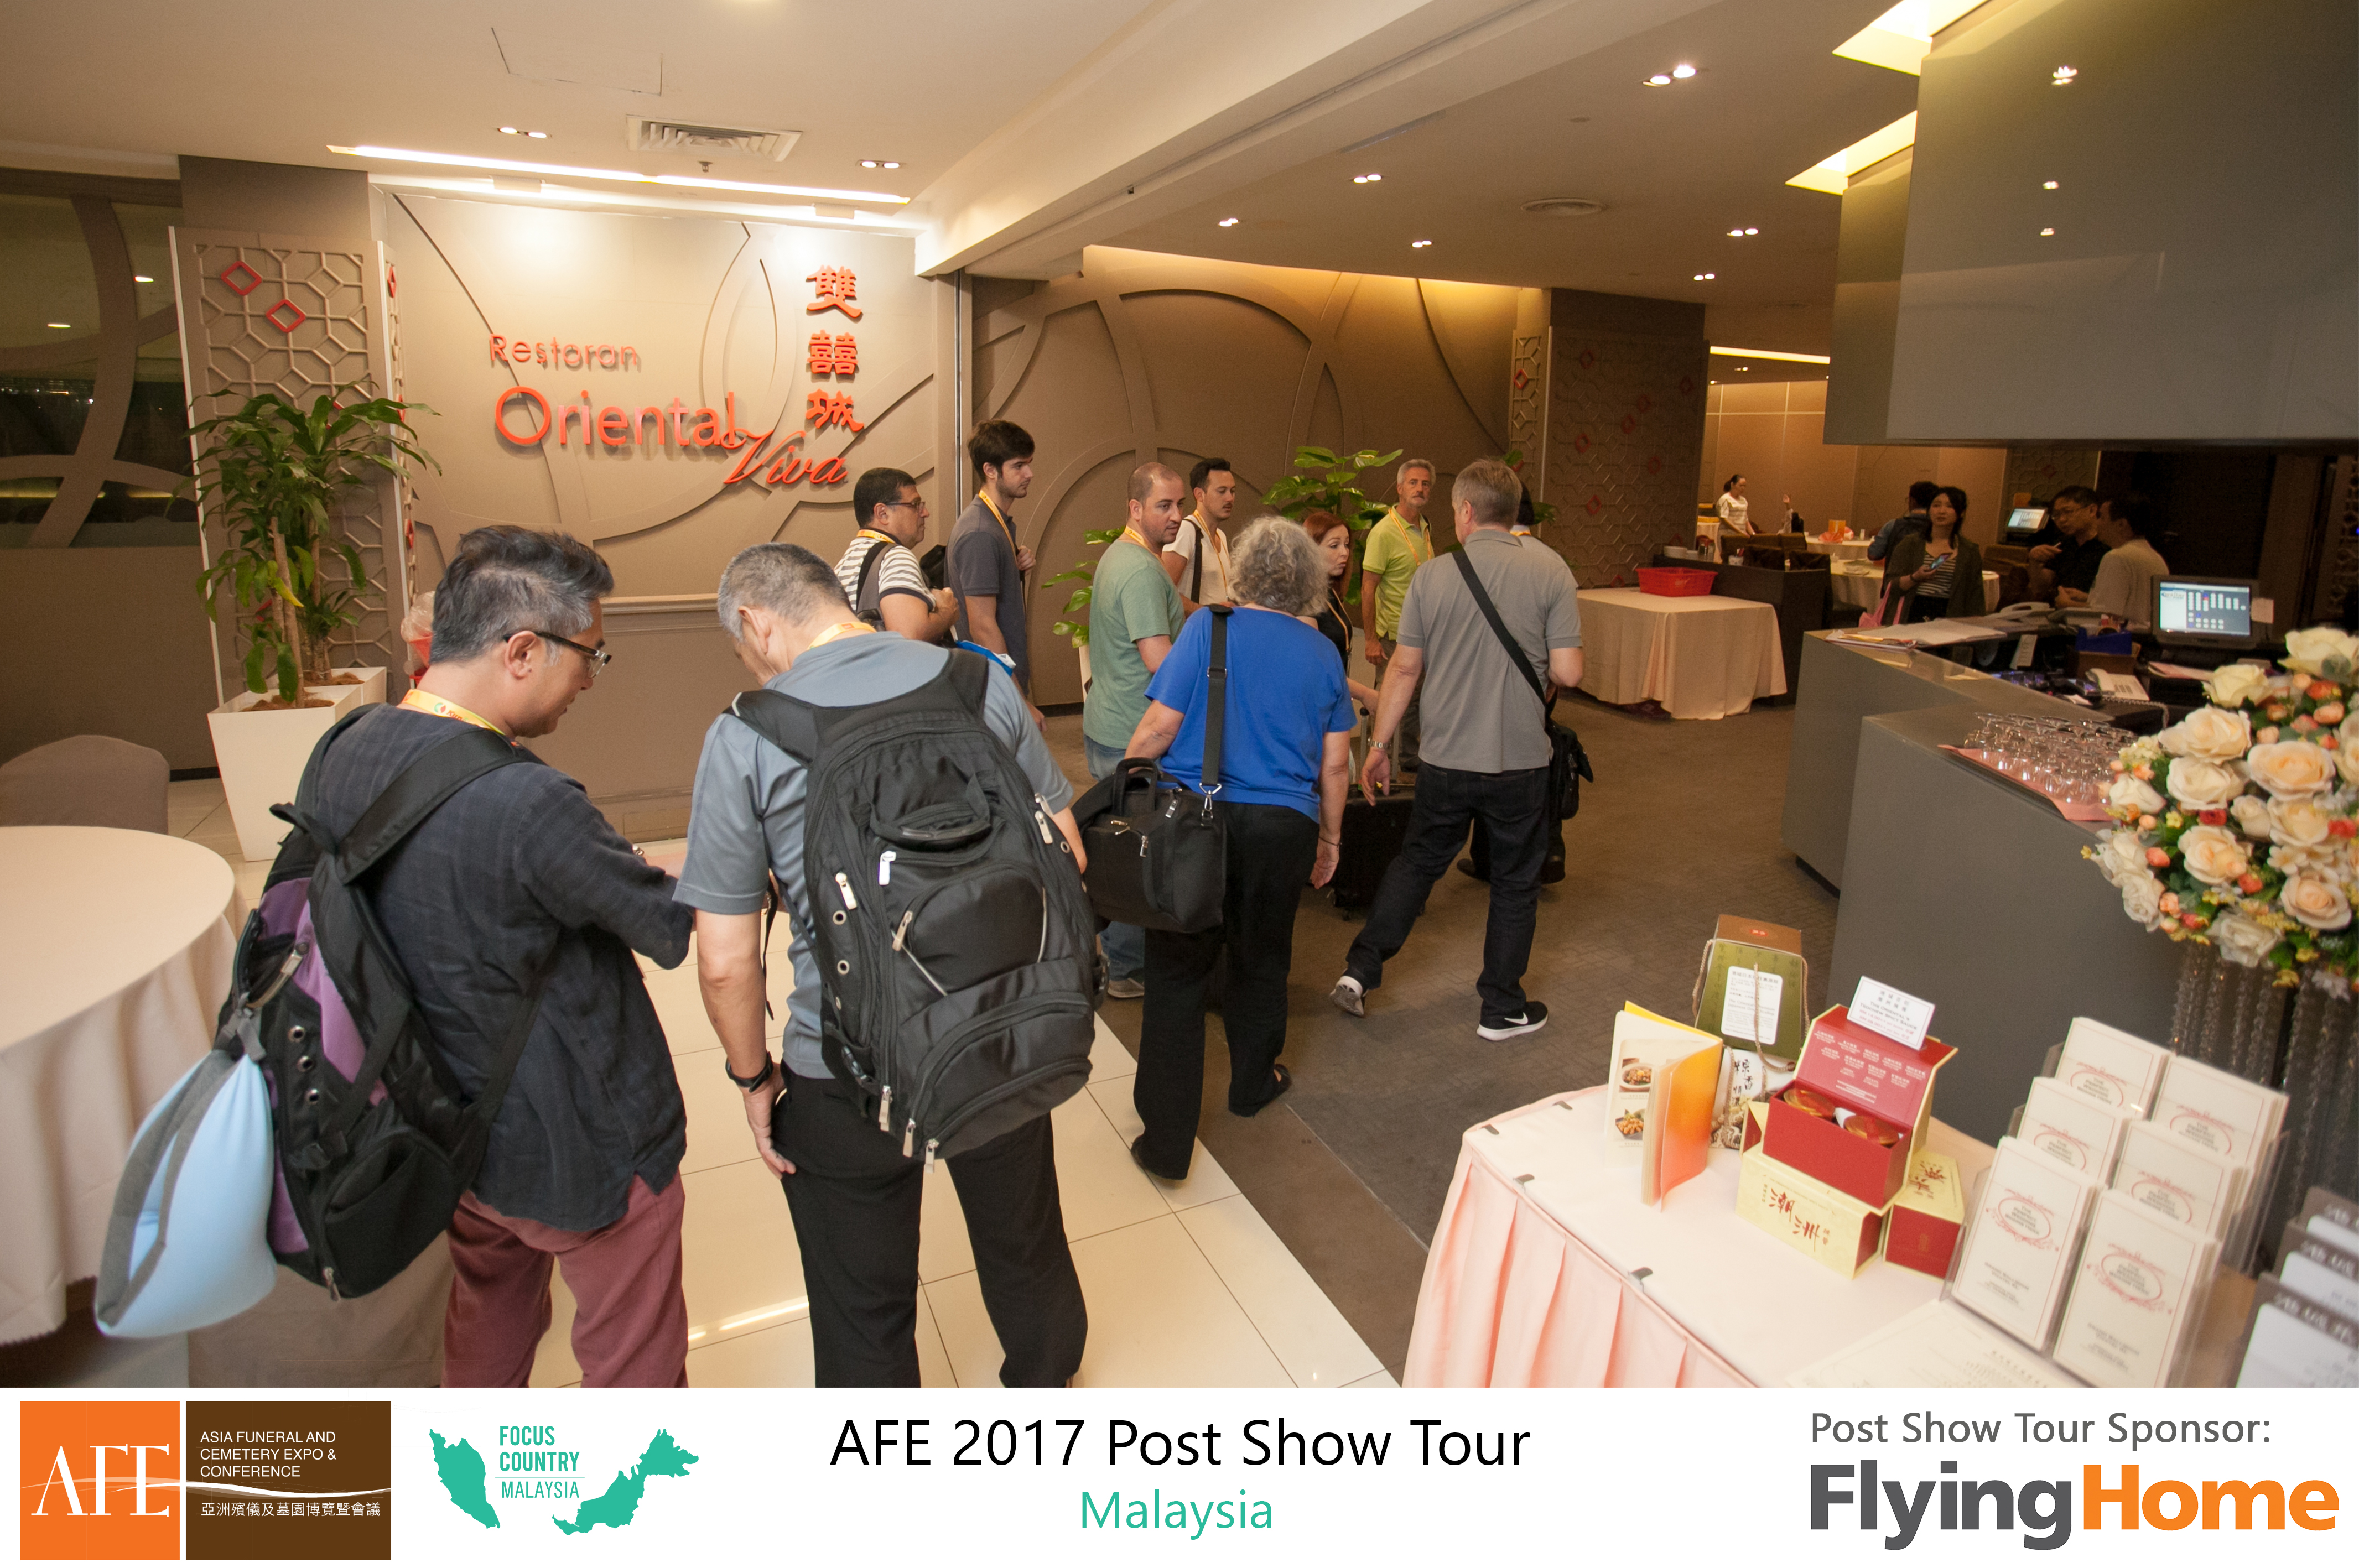 AFE Post Show Tour 2017 Day 1 - 08